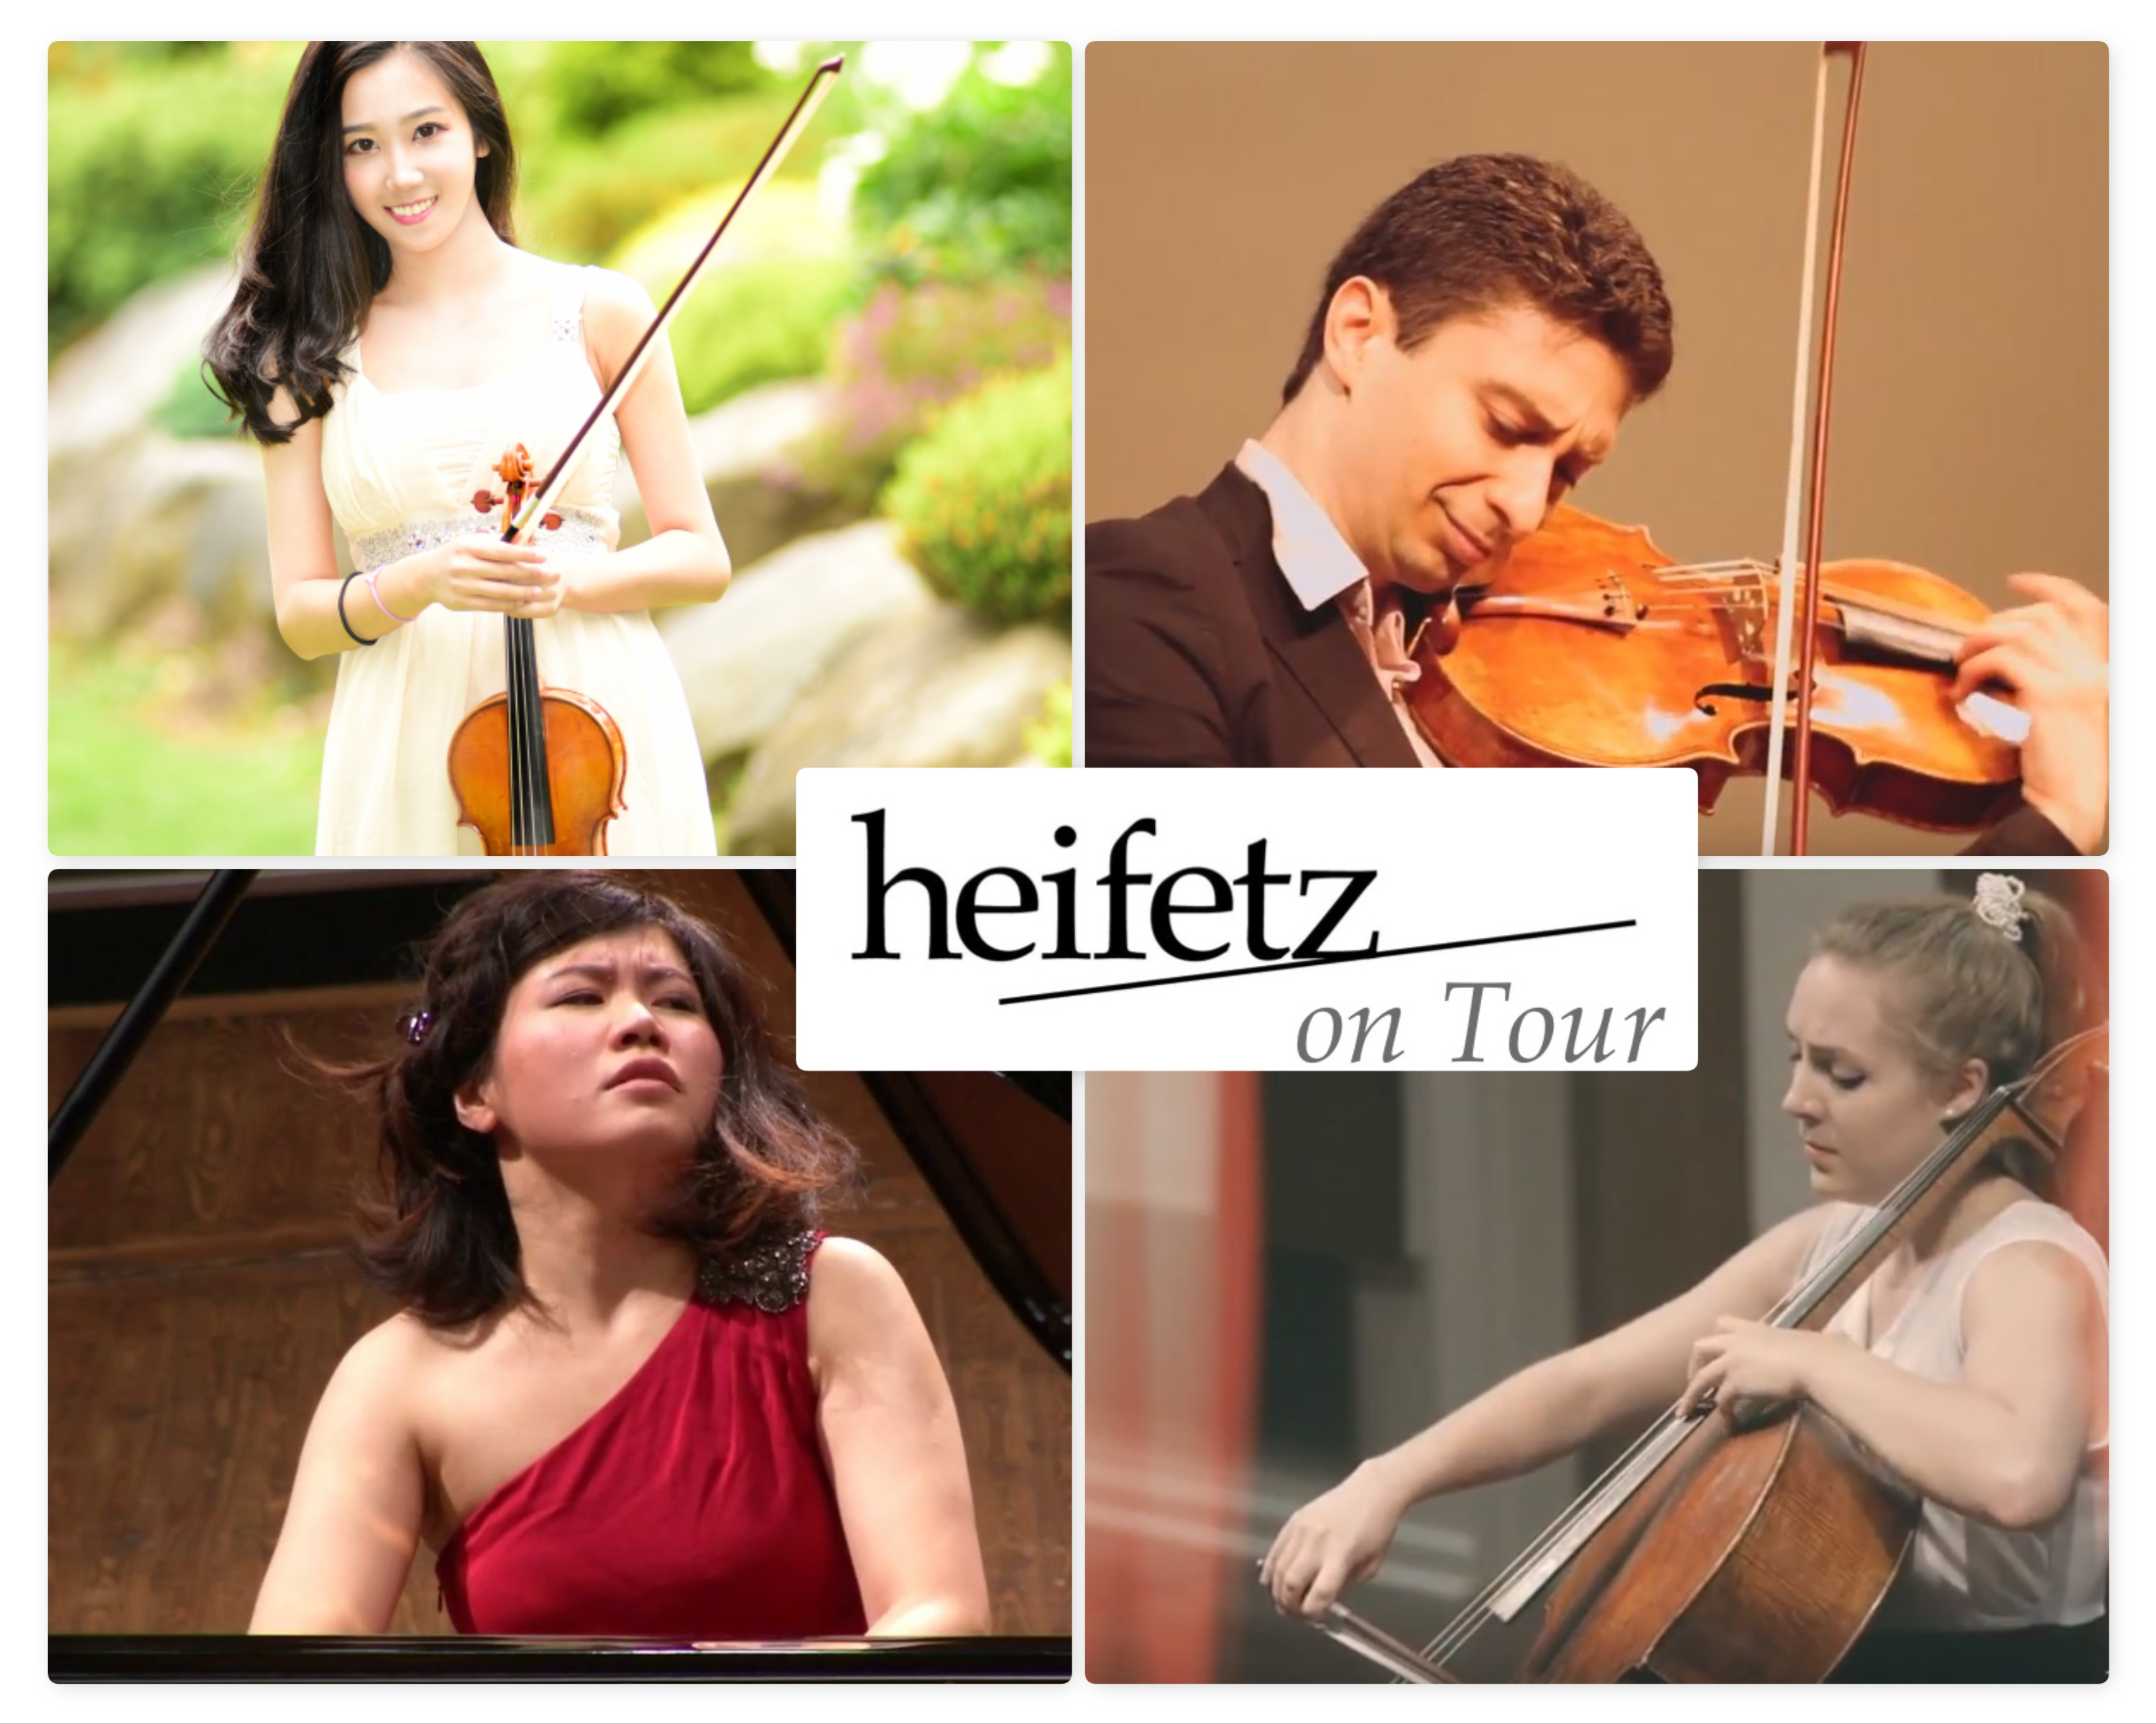 Heifetz on Tour for October 2018 10 x 8